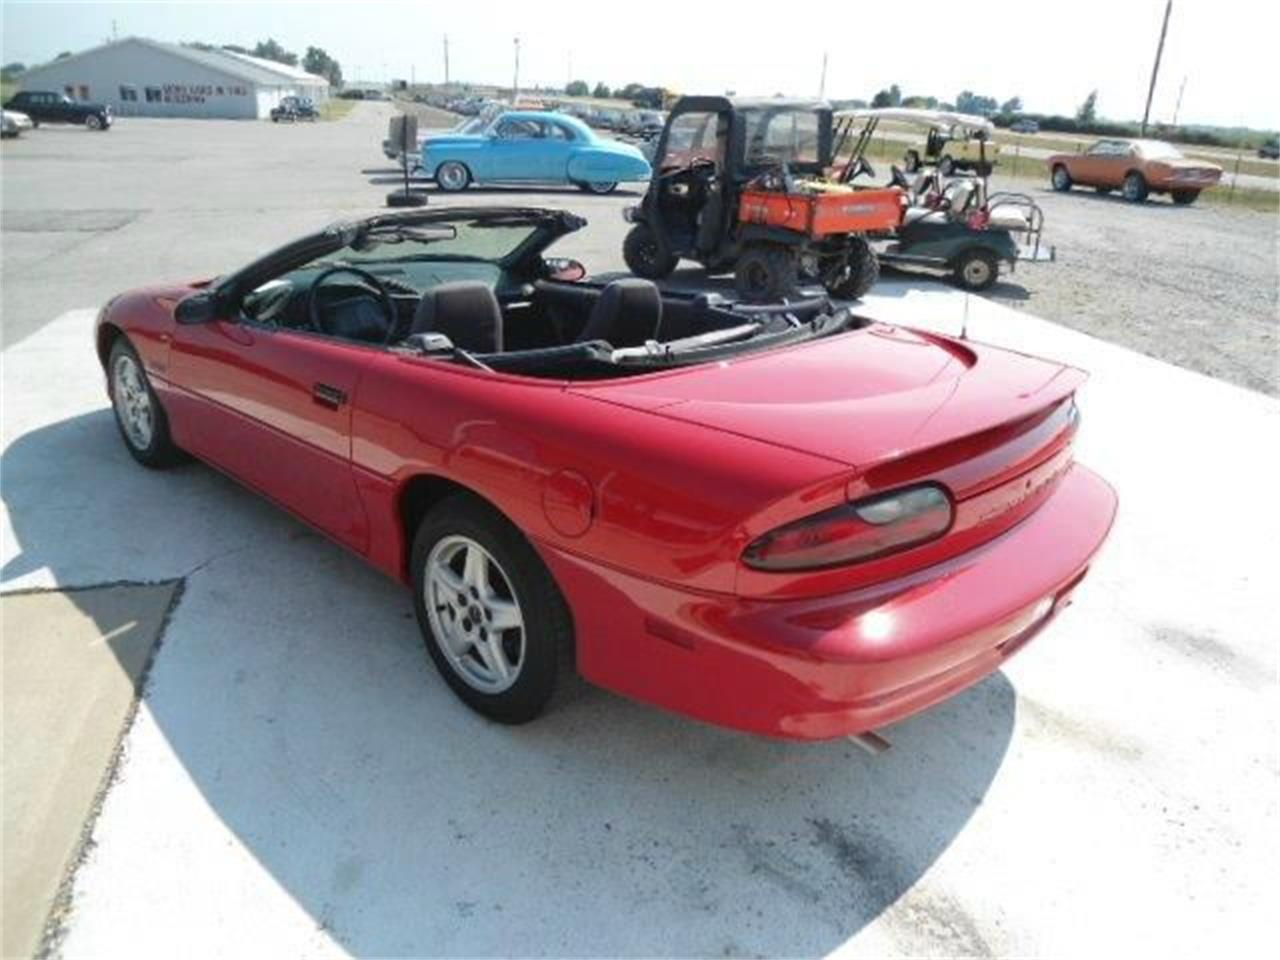 Large Picture of '94 Camaro located in Illinois - $6,995.00 - K41R